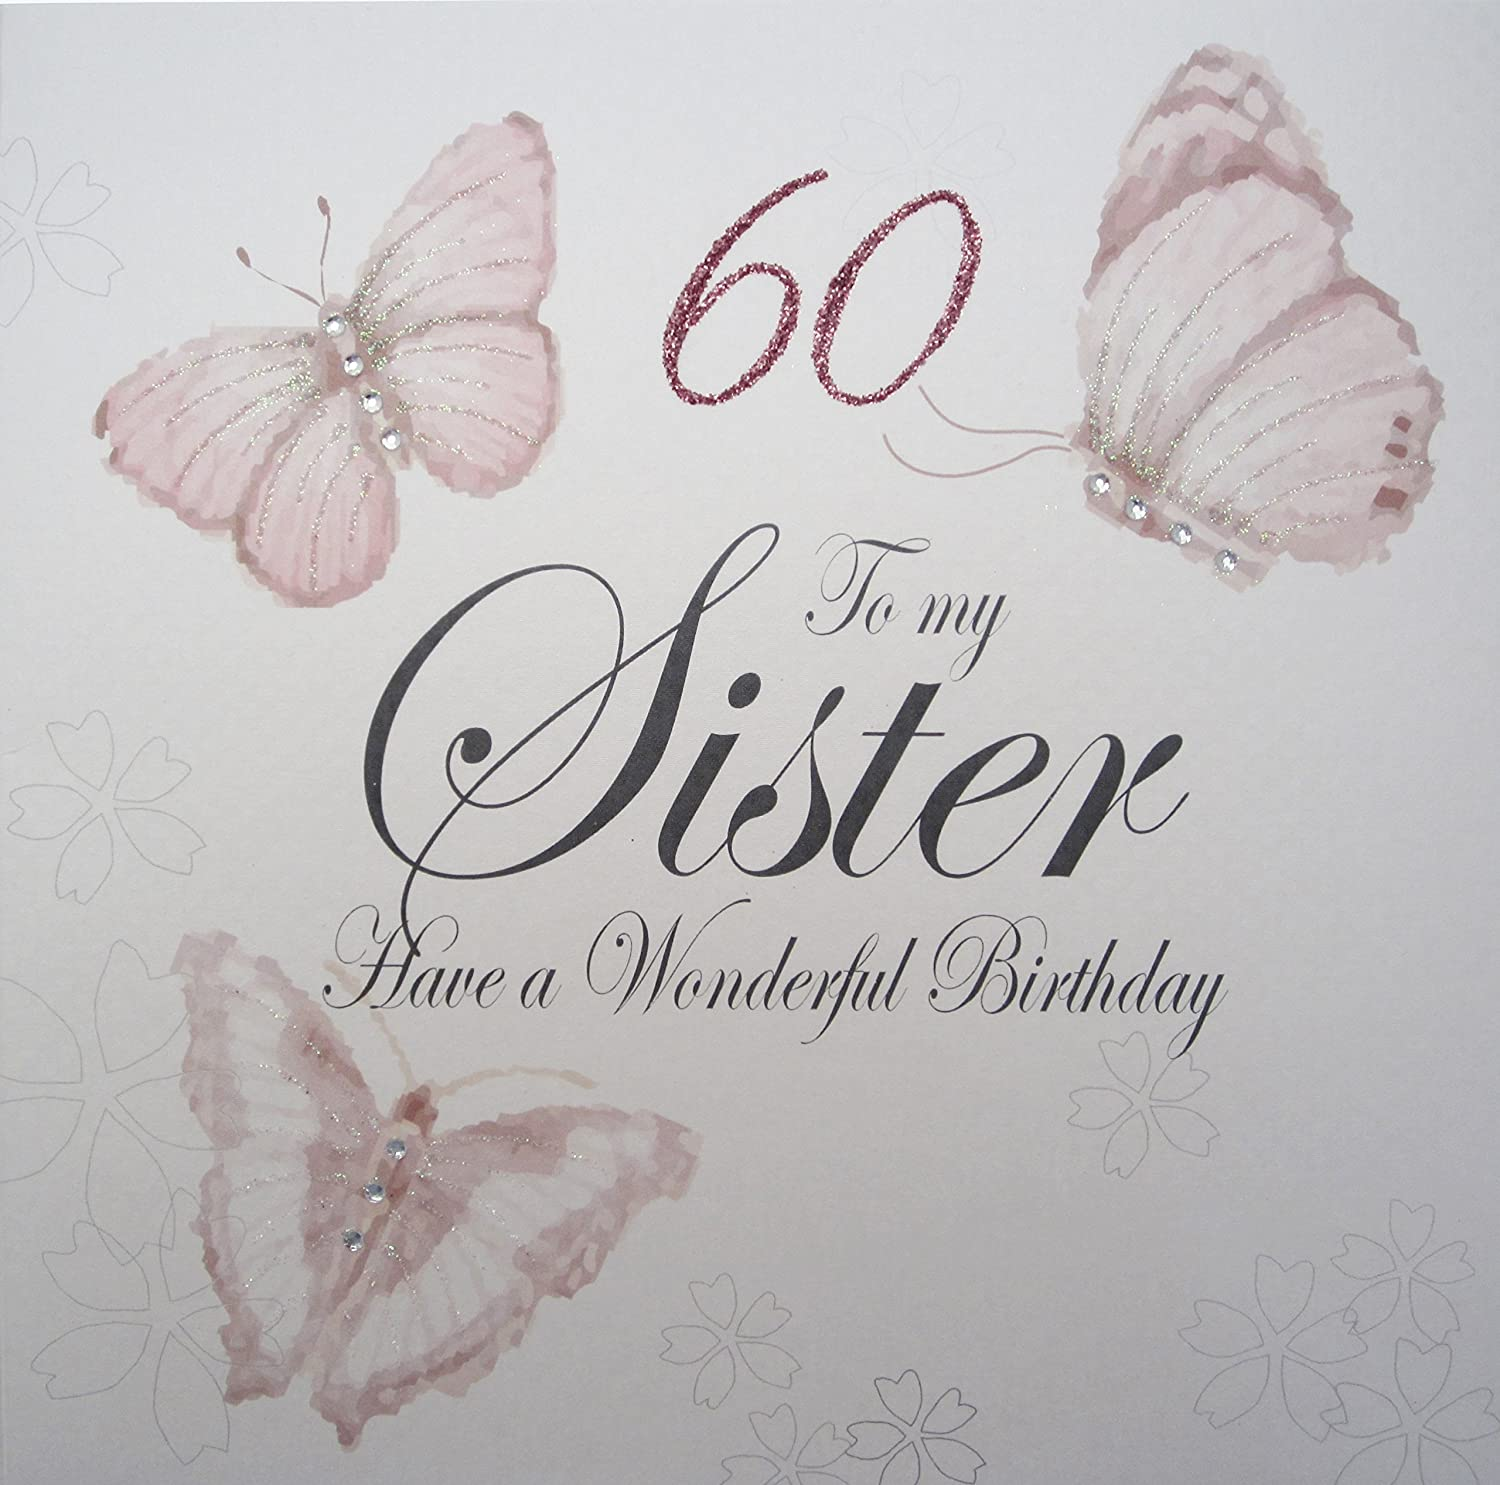 WHITE COTTON CARDS 60 To My Sister Have A Wonderful Handmade Large 60th Birthday Card